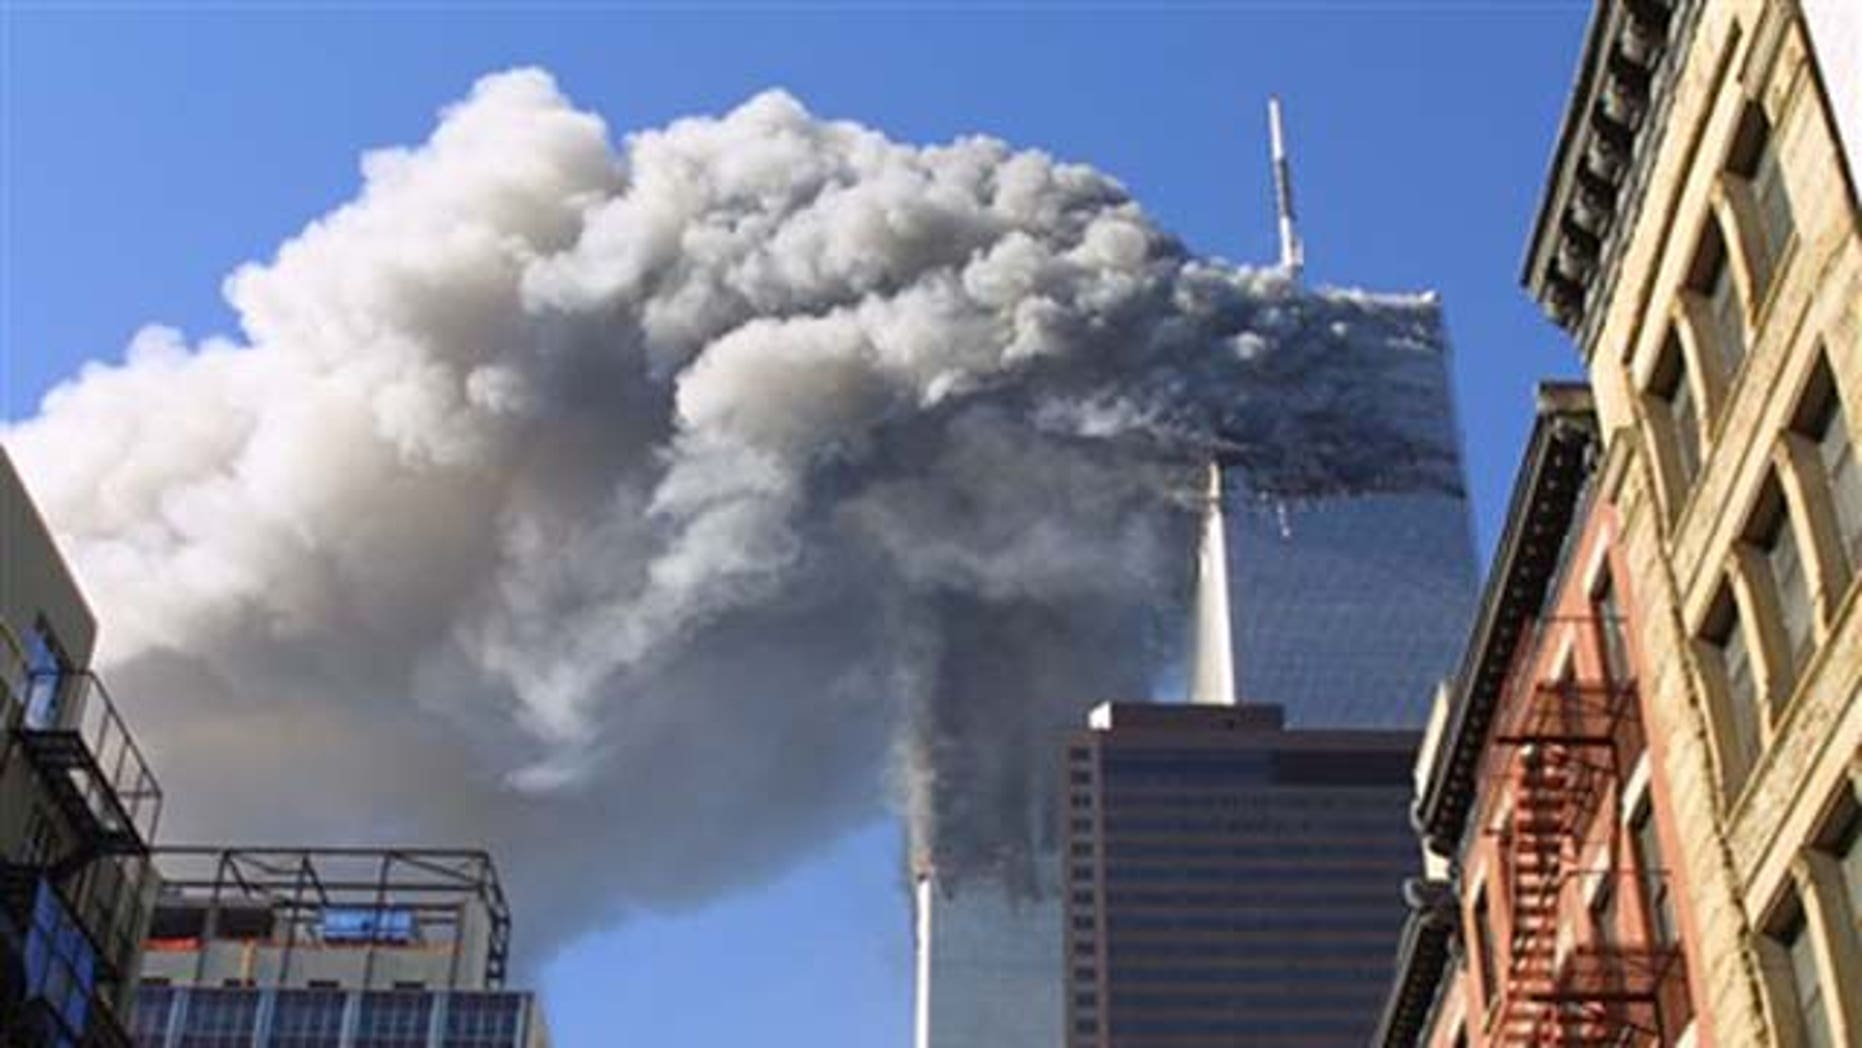 FILE - In this Sept. 11, 2001 file photo, the twin towers of the World Trade Center burn after hijacked planes crashed into them in New York. As the post-Sept. 11 decade ends, some foreign families of the victims are eager to move past the tragedy. But though the pain transcended borders, foreign families have battled to cope with their loss from afar.